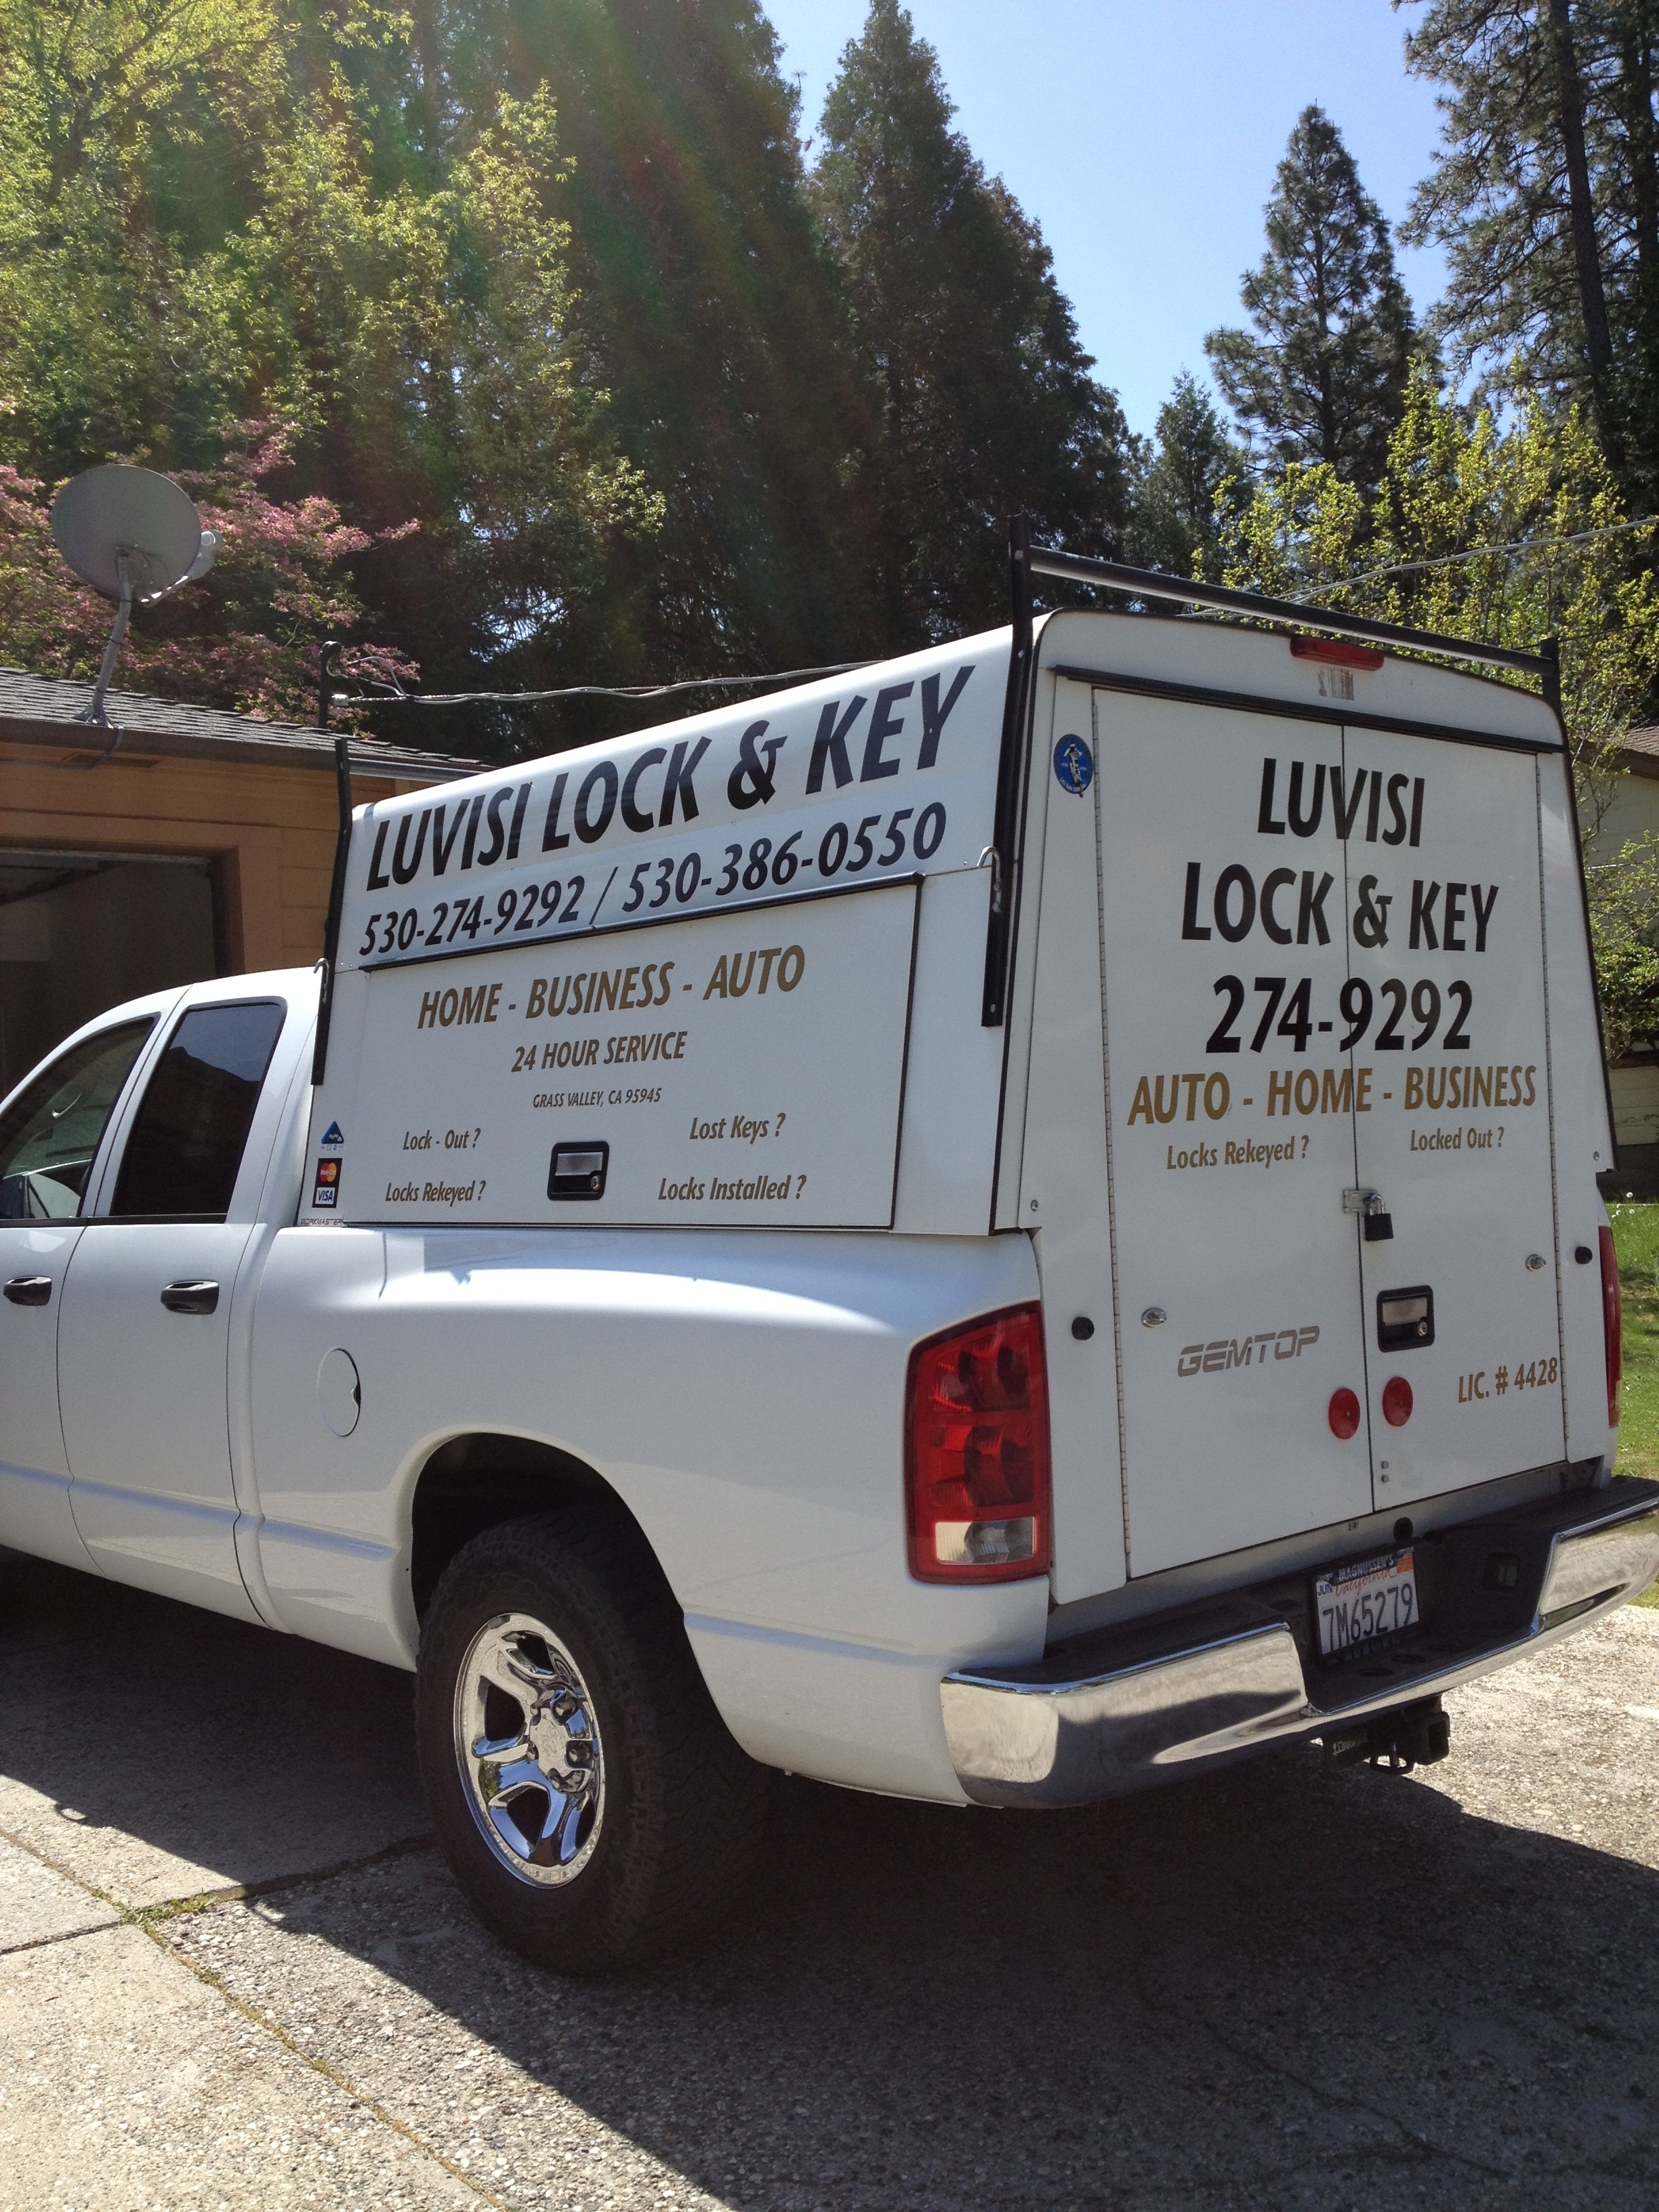 LuVisi Mobile Lock & Key - Grass Valley, CA -